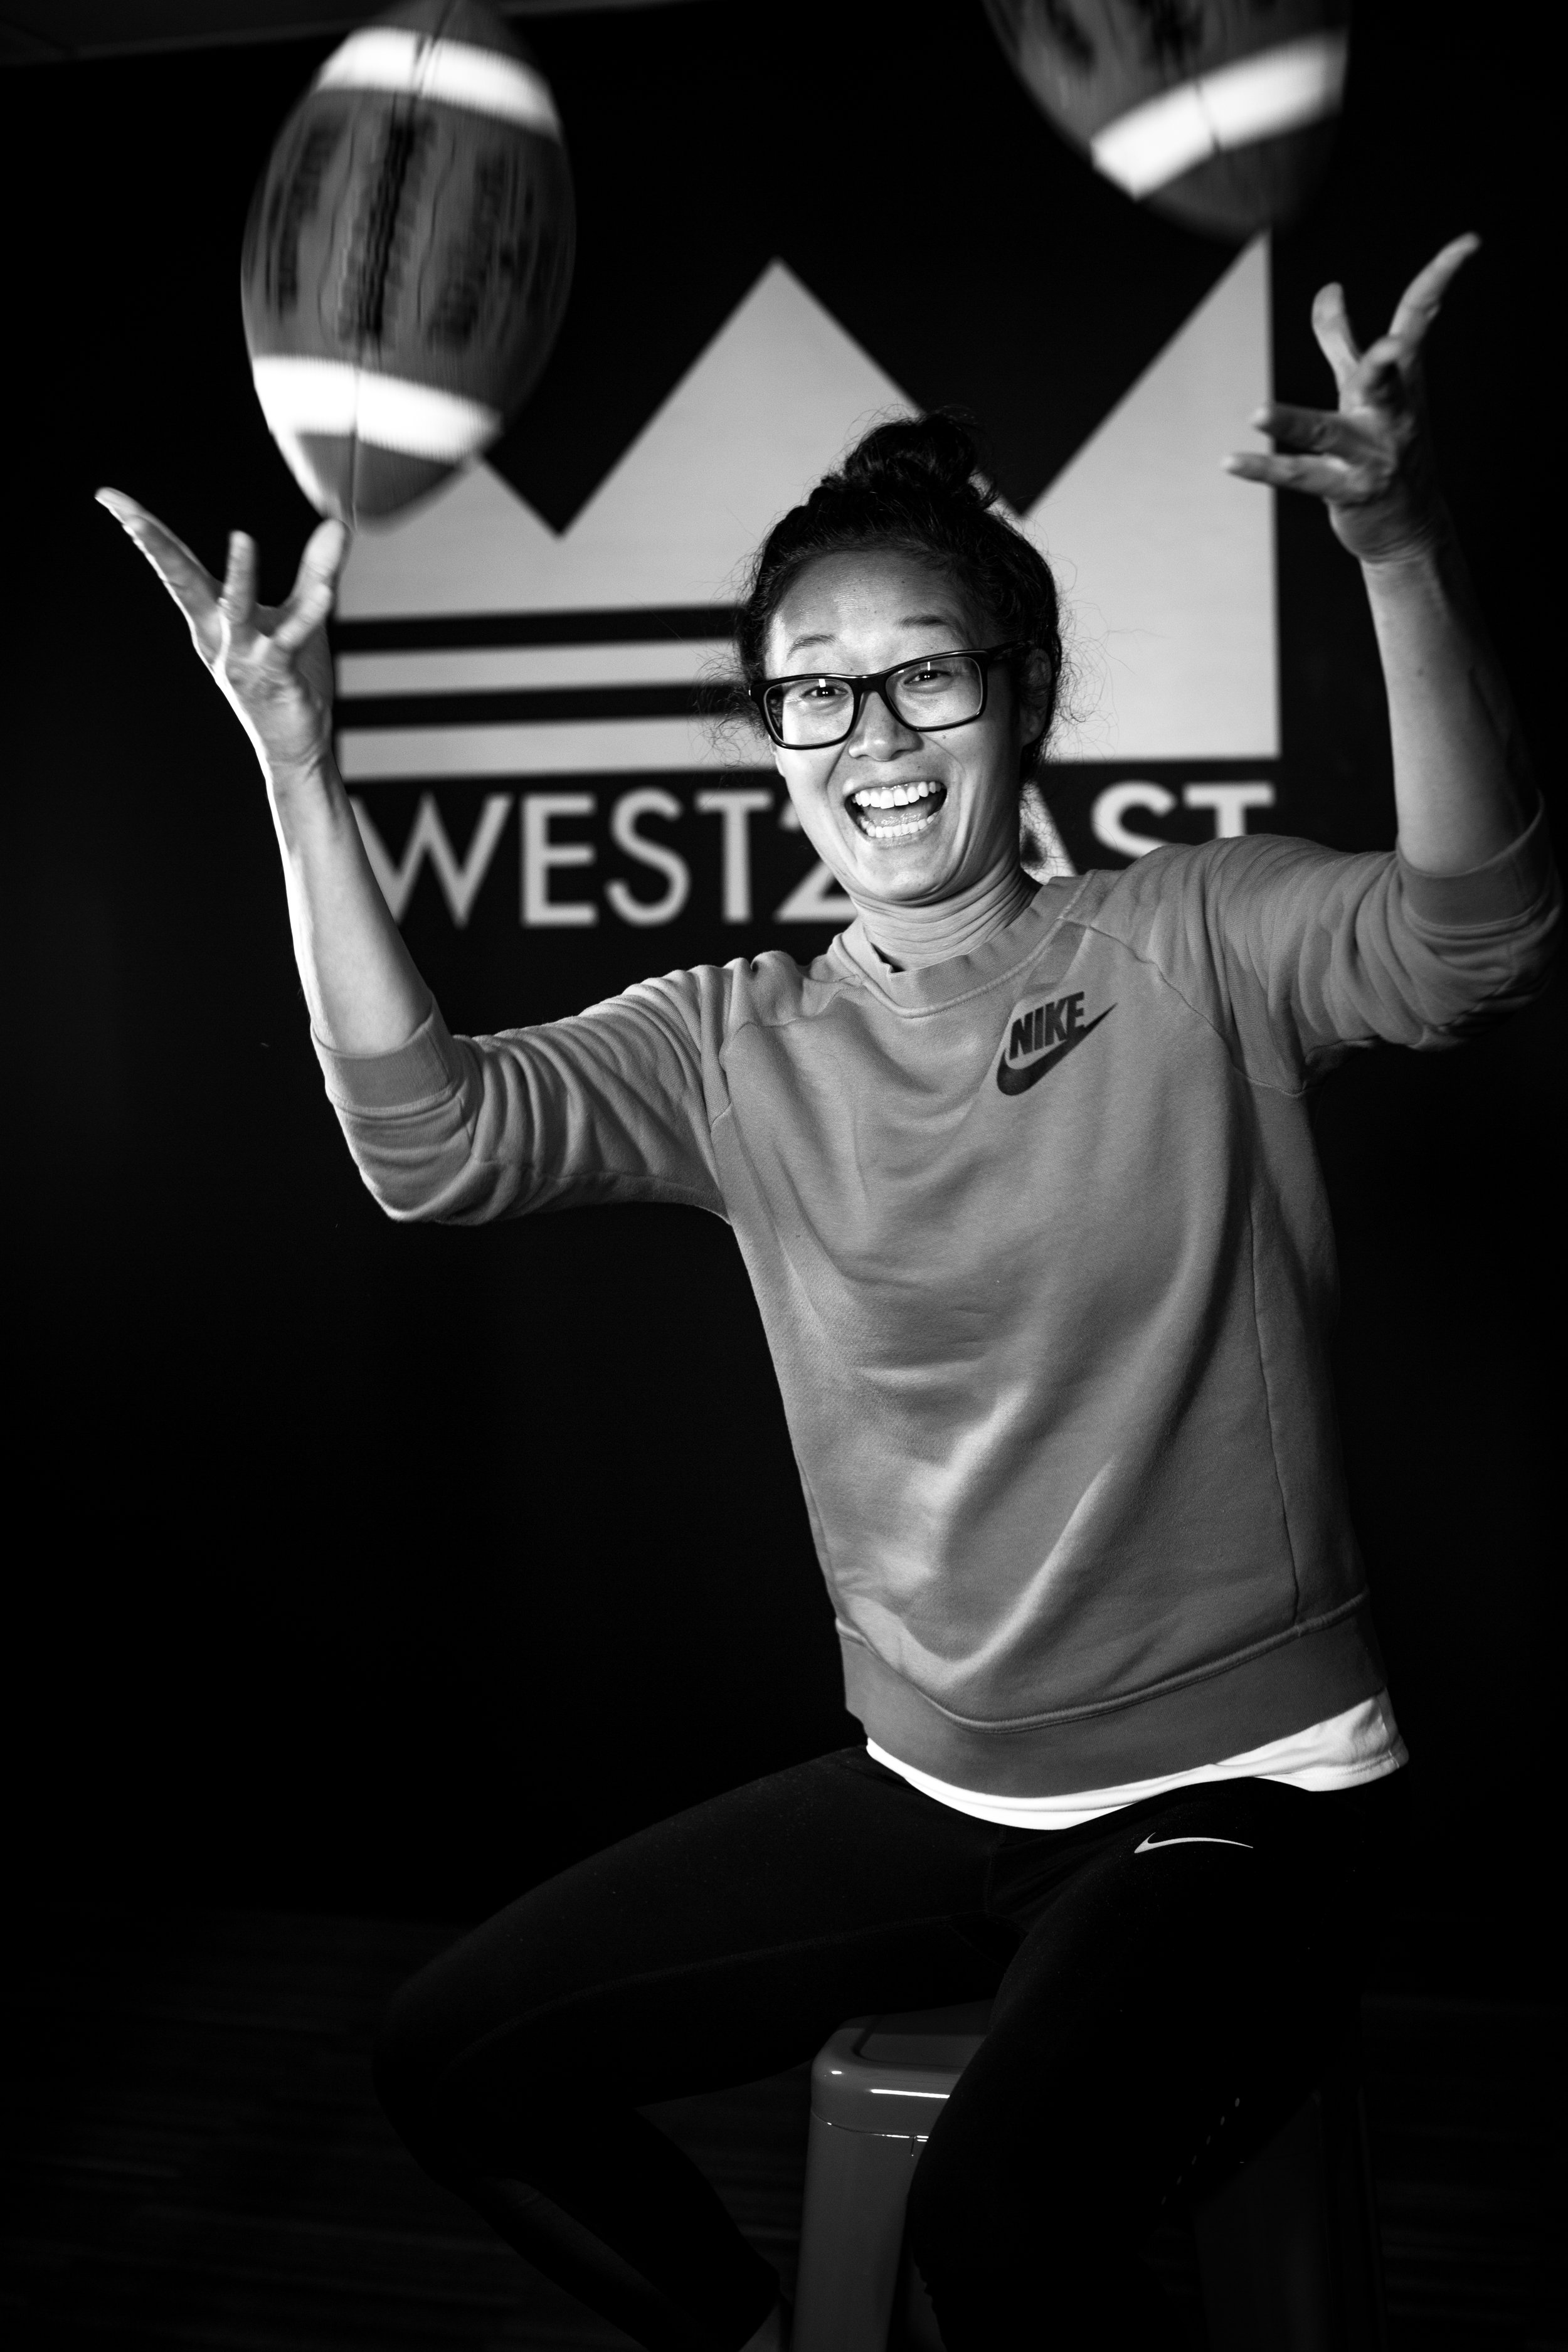 Janet is a student of the human mind and body. She assists professional athletes to a higher level of performance and is inspired by athletes reaching unknown greater heights.  Daily delights include a good belly laugh and baby goat videos. Come to her if you are looking to play a game of euchre or ultimate frisbee.